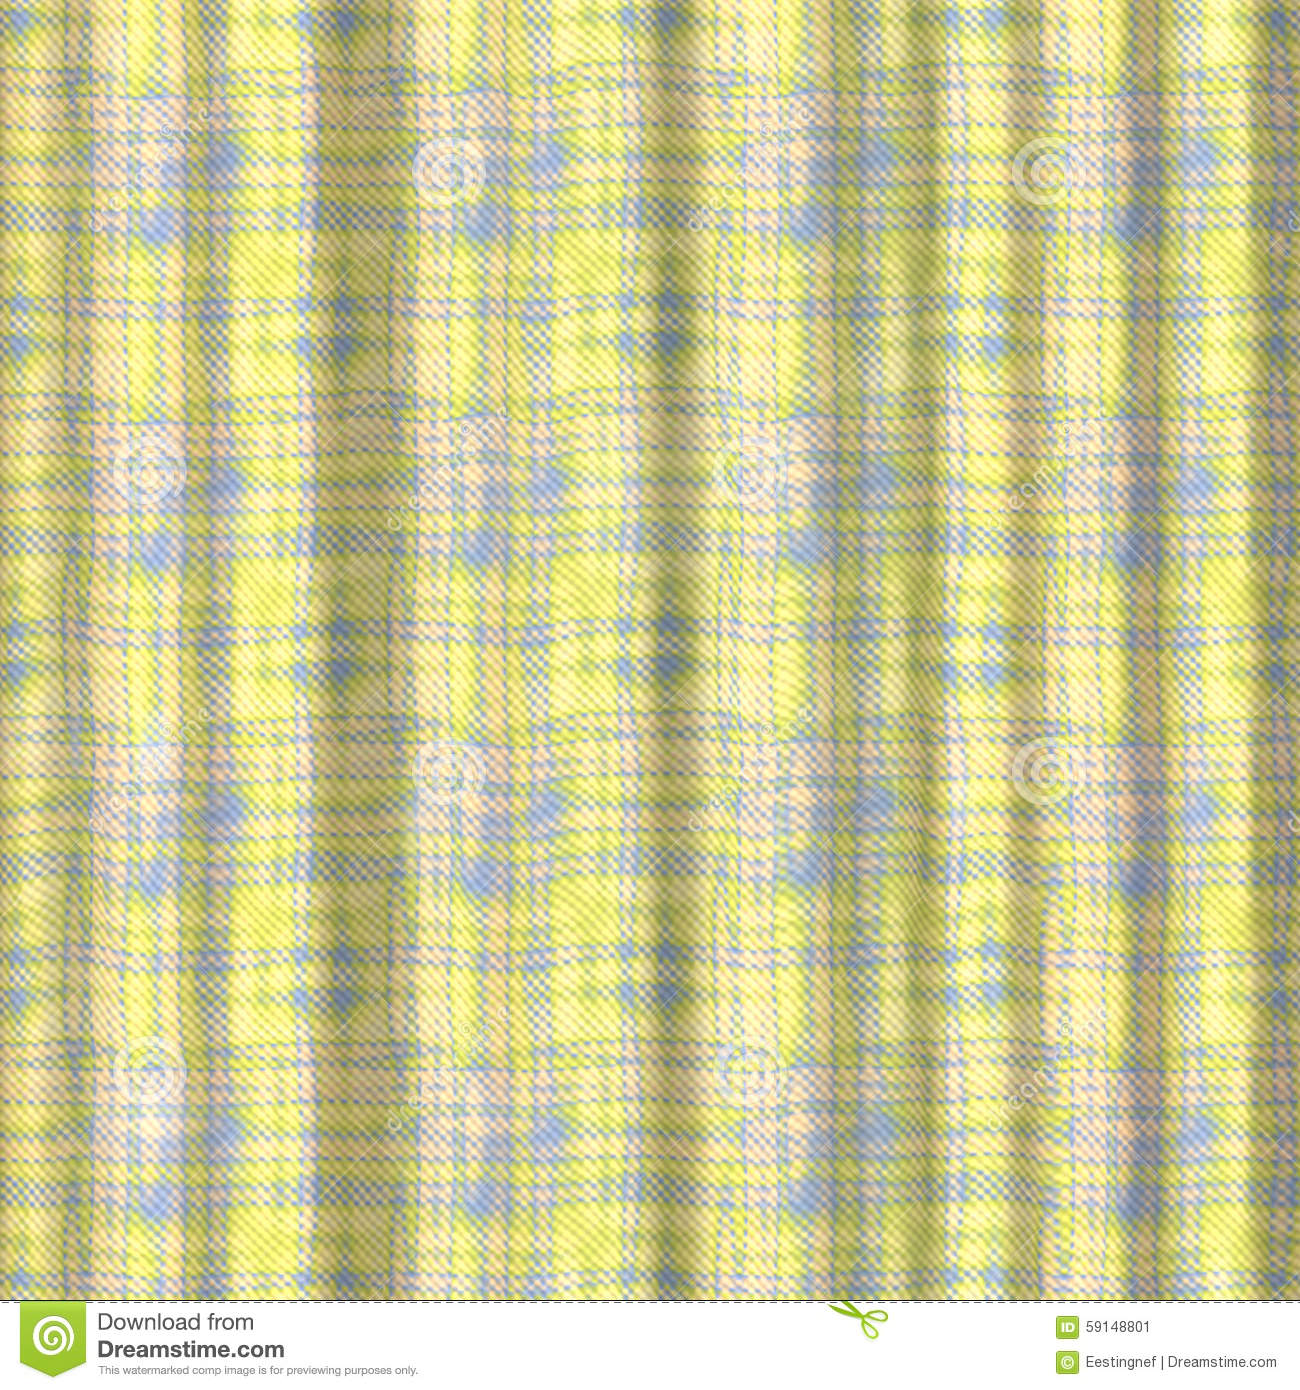 Curtain Texture Seamless curtain texture generated stock photo - image: 59148801